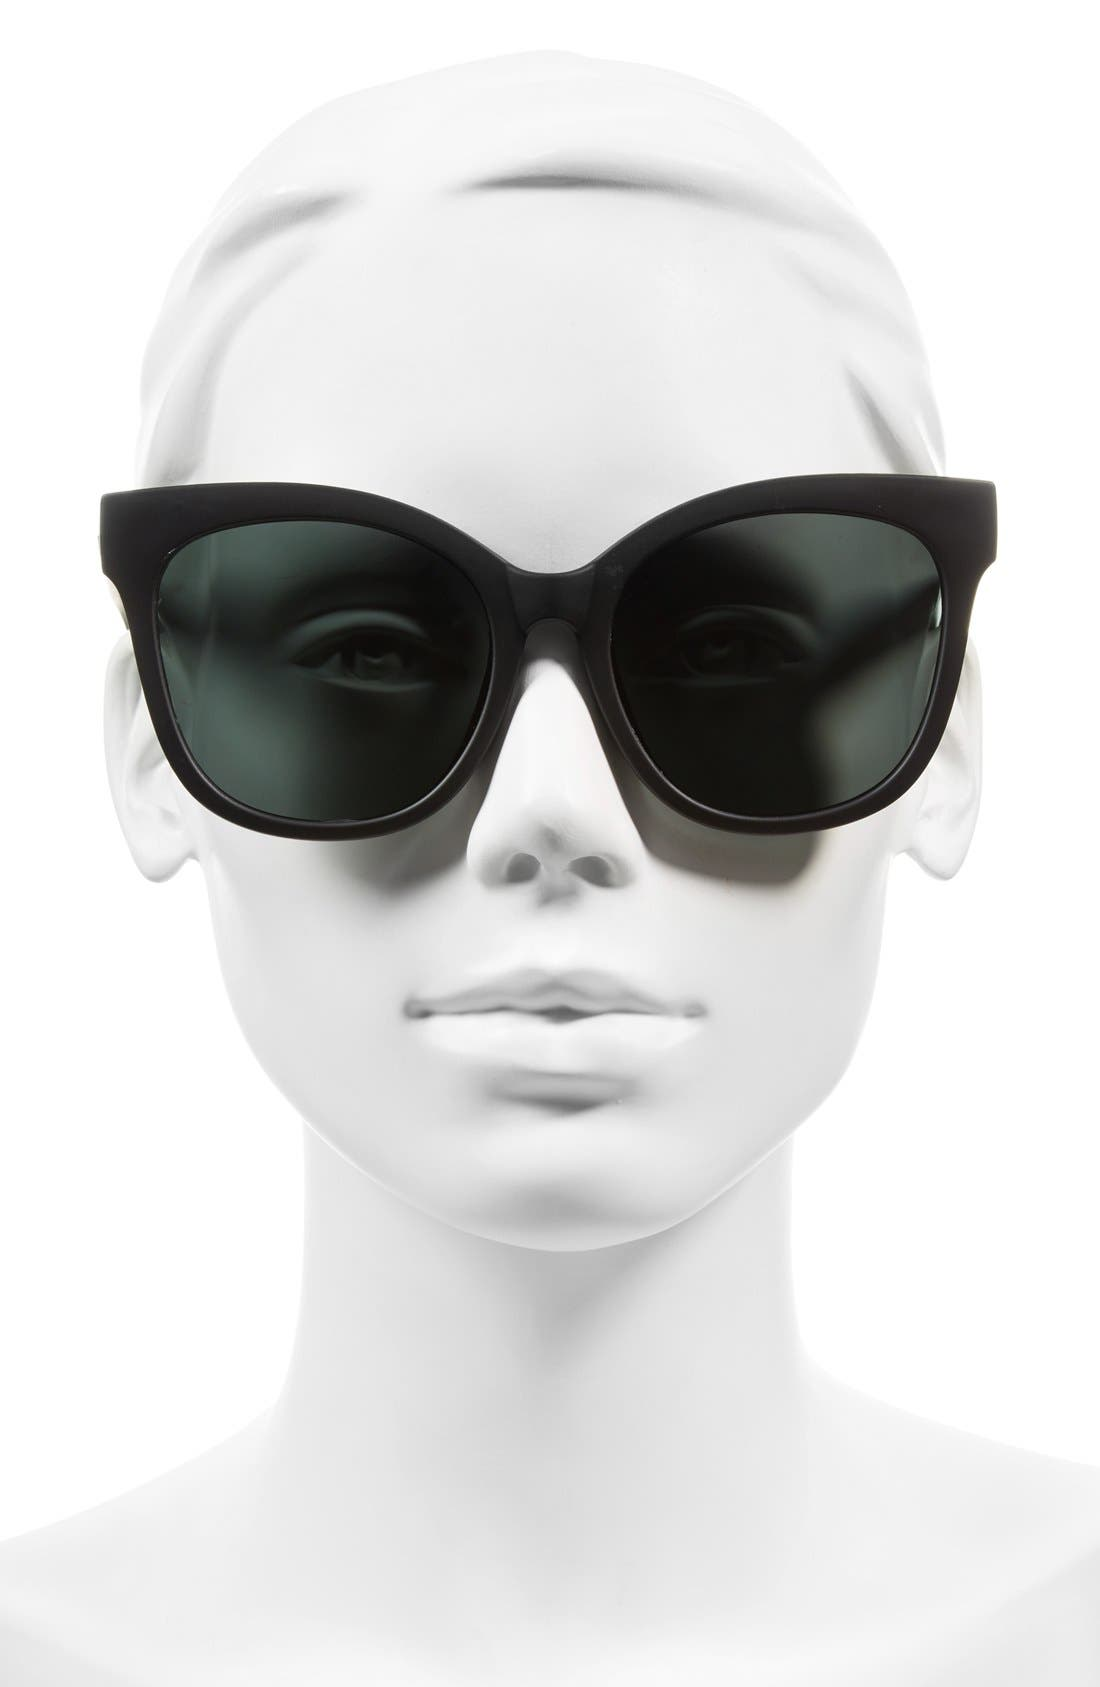 It's My Way 55mm Sunglasses,                             Alternate thumbnail 3, color,                             Black/ Smoke